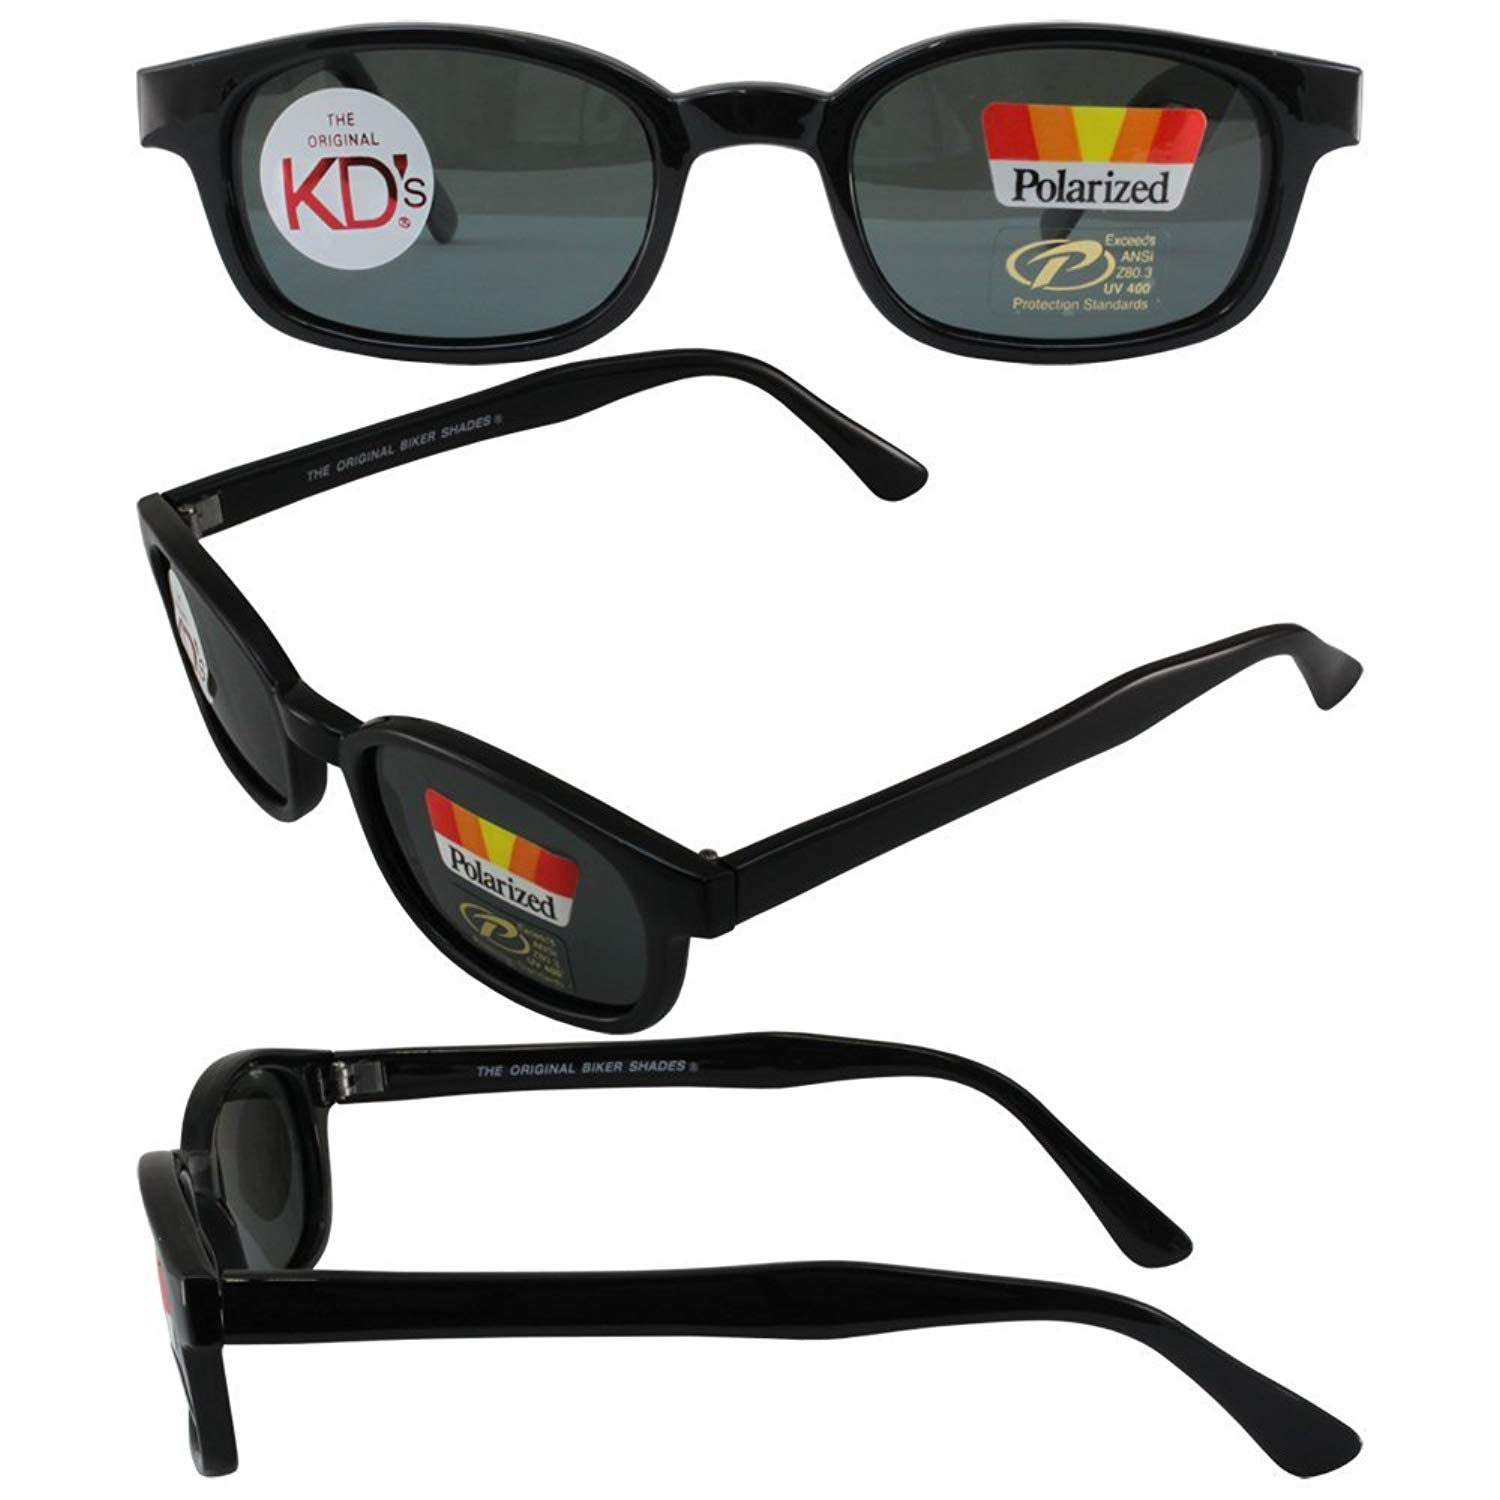 The Original X-KD's Biker Shades By PCSUN 20% Larger Black Frames Polarized Grey Lens